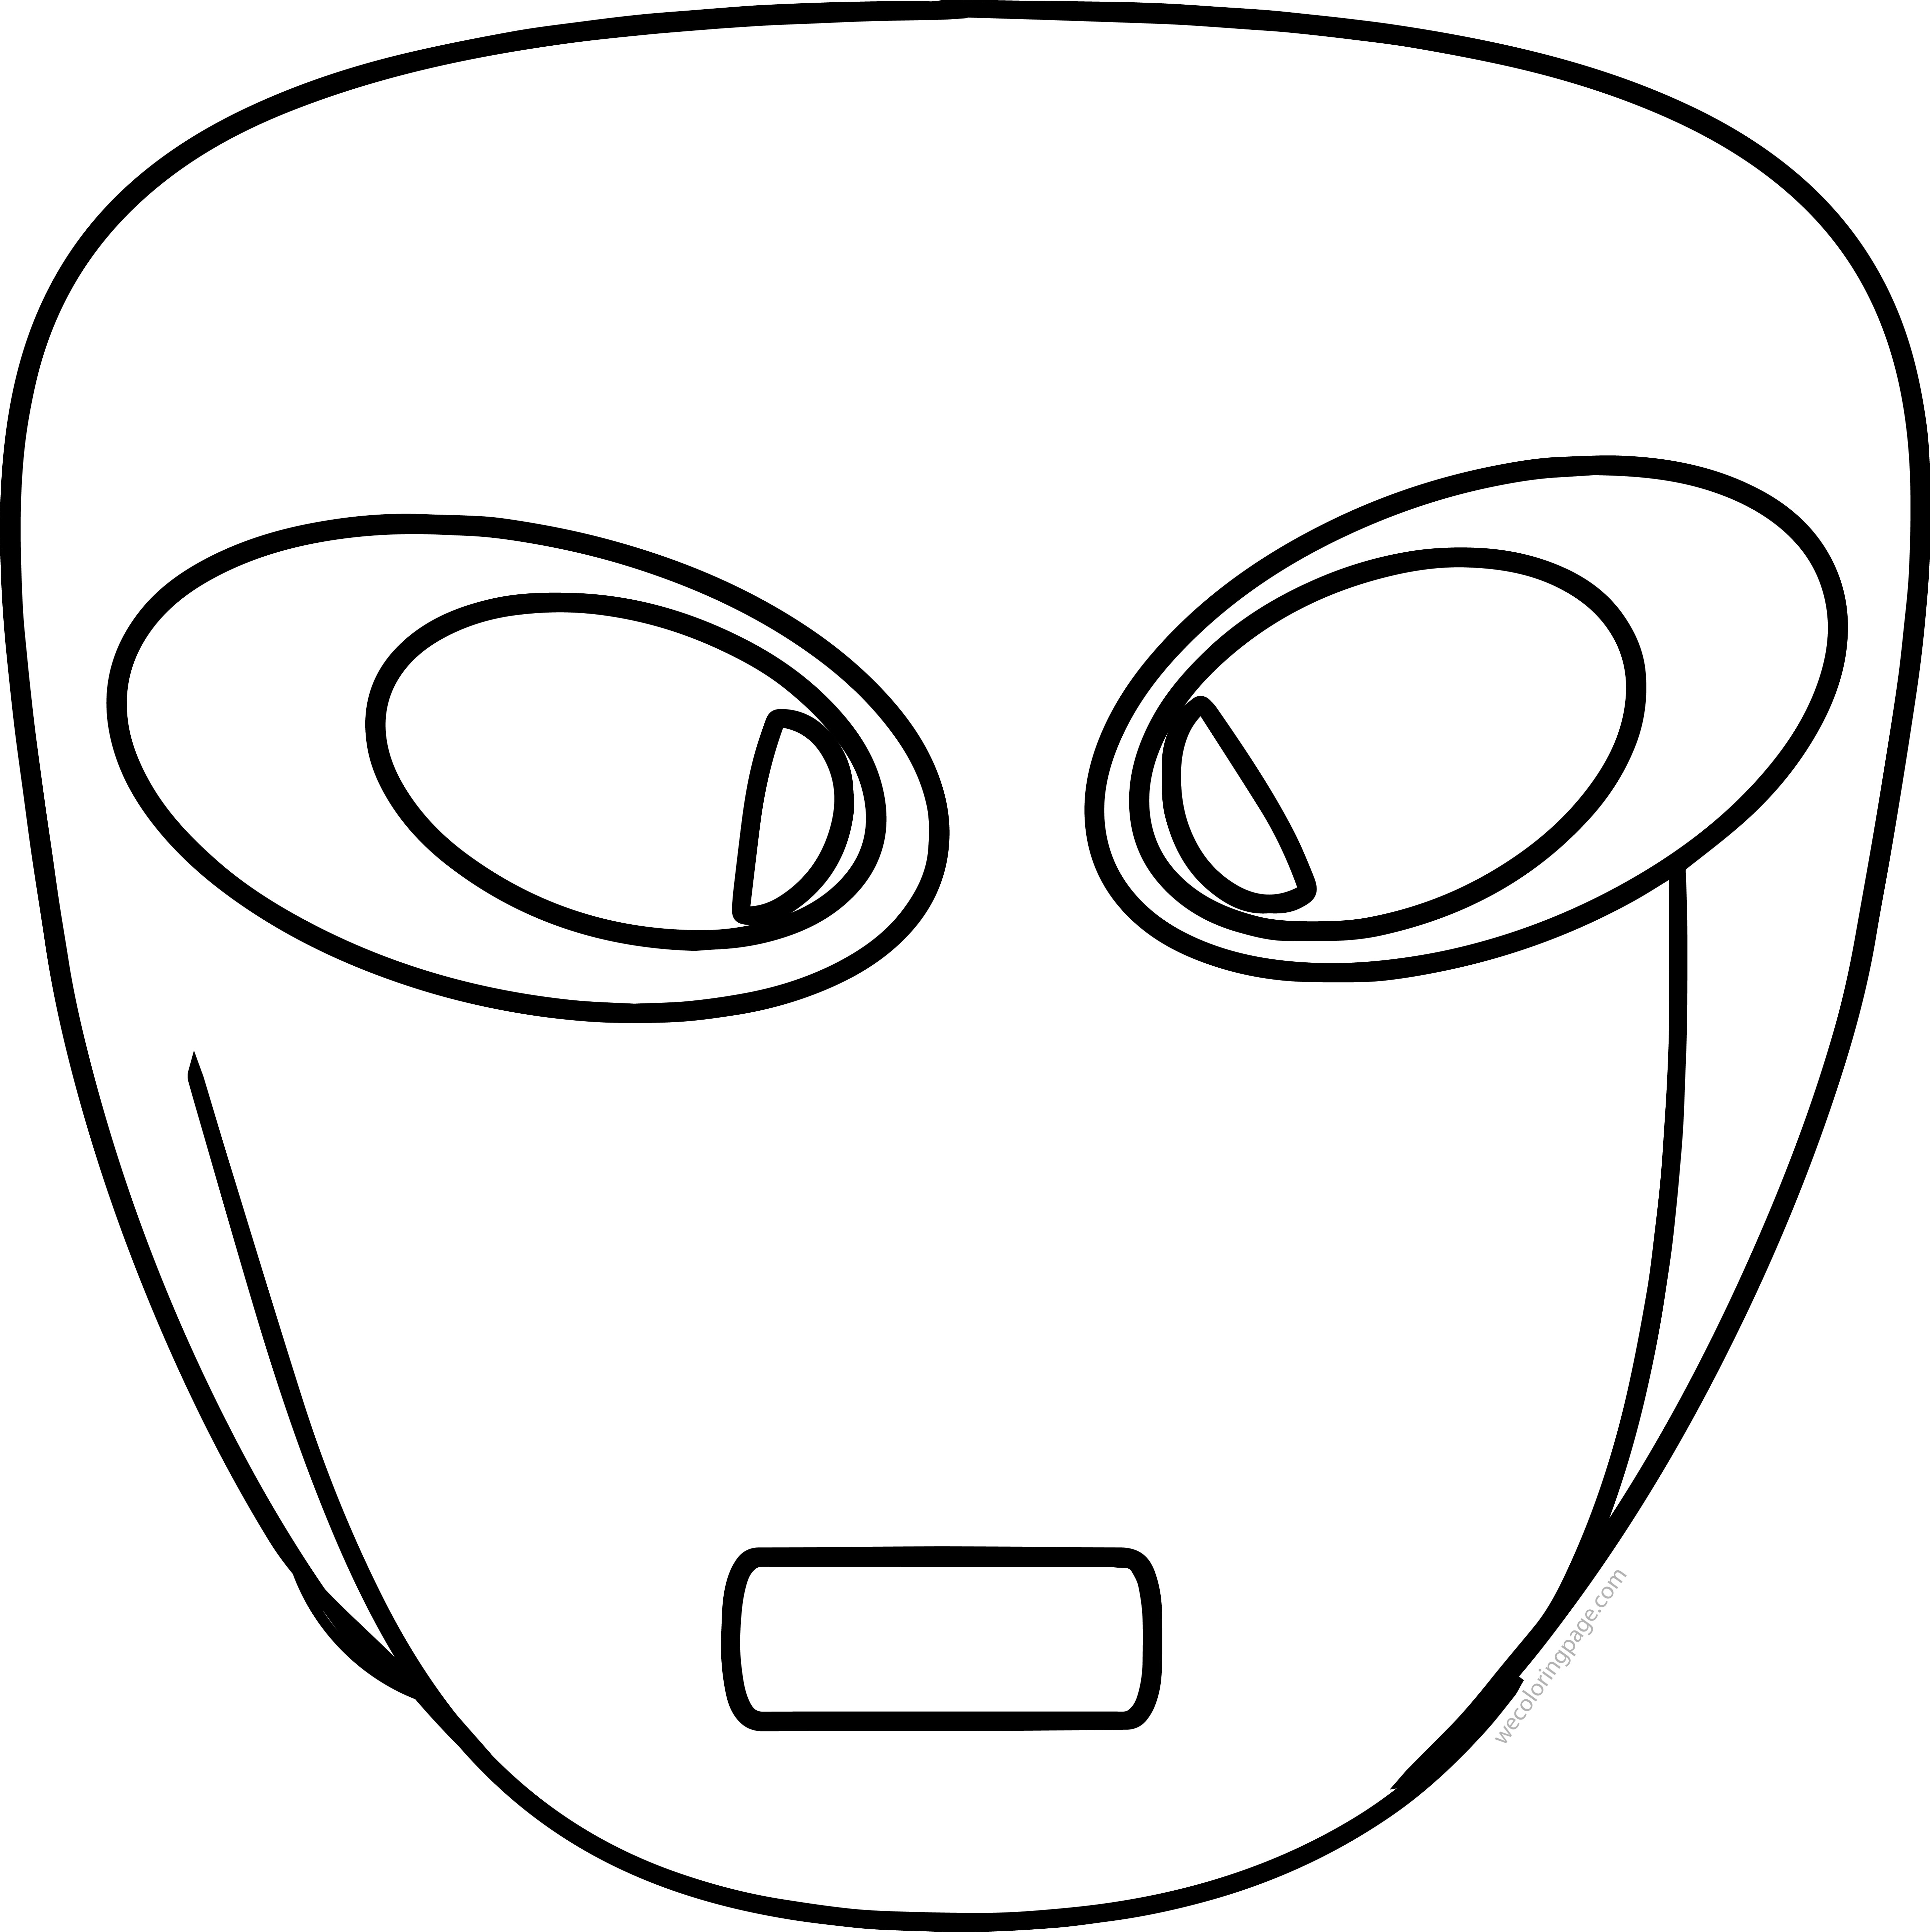 Free Extra Terrestrial Smiley Face Illustration Coloring Page ...